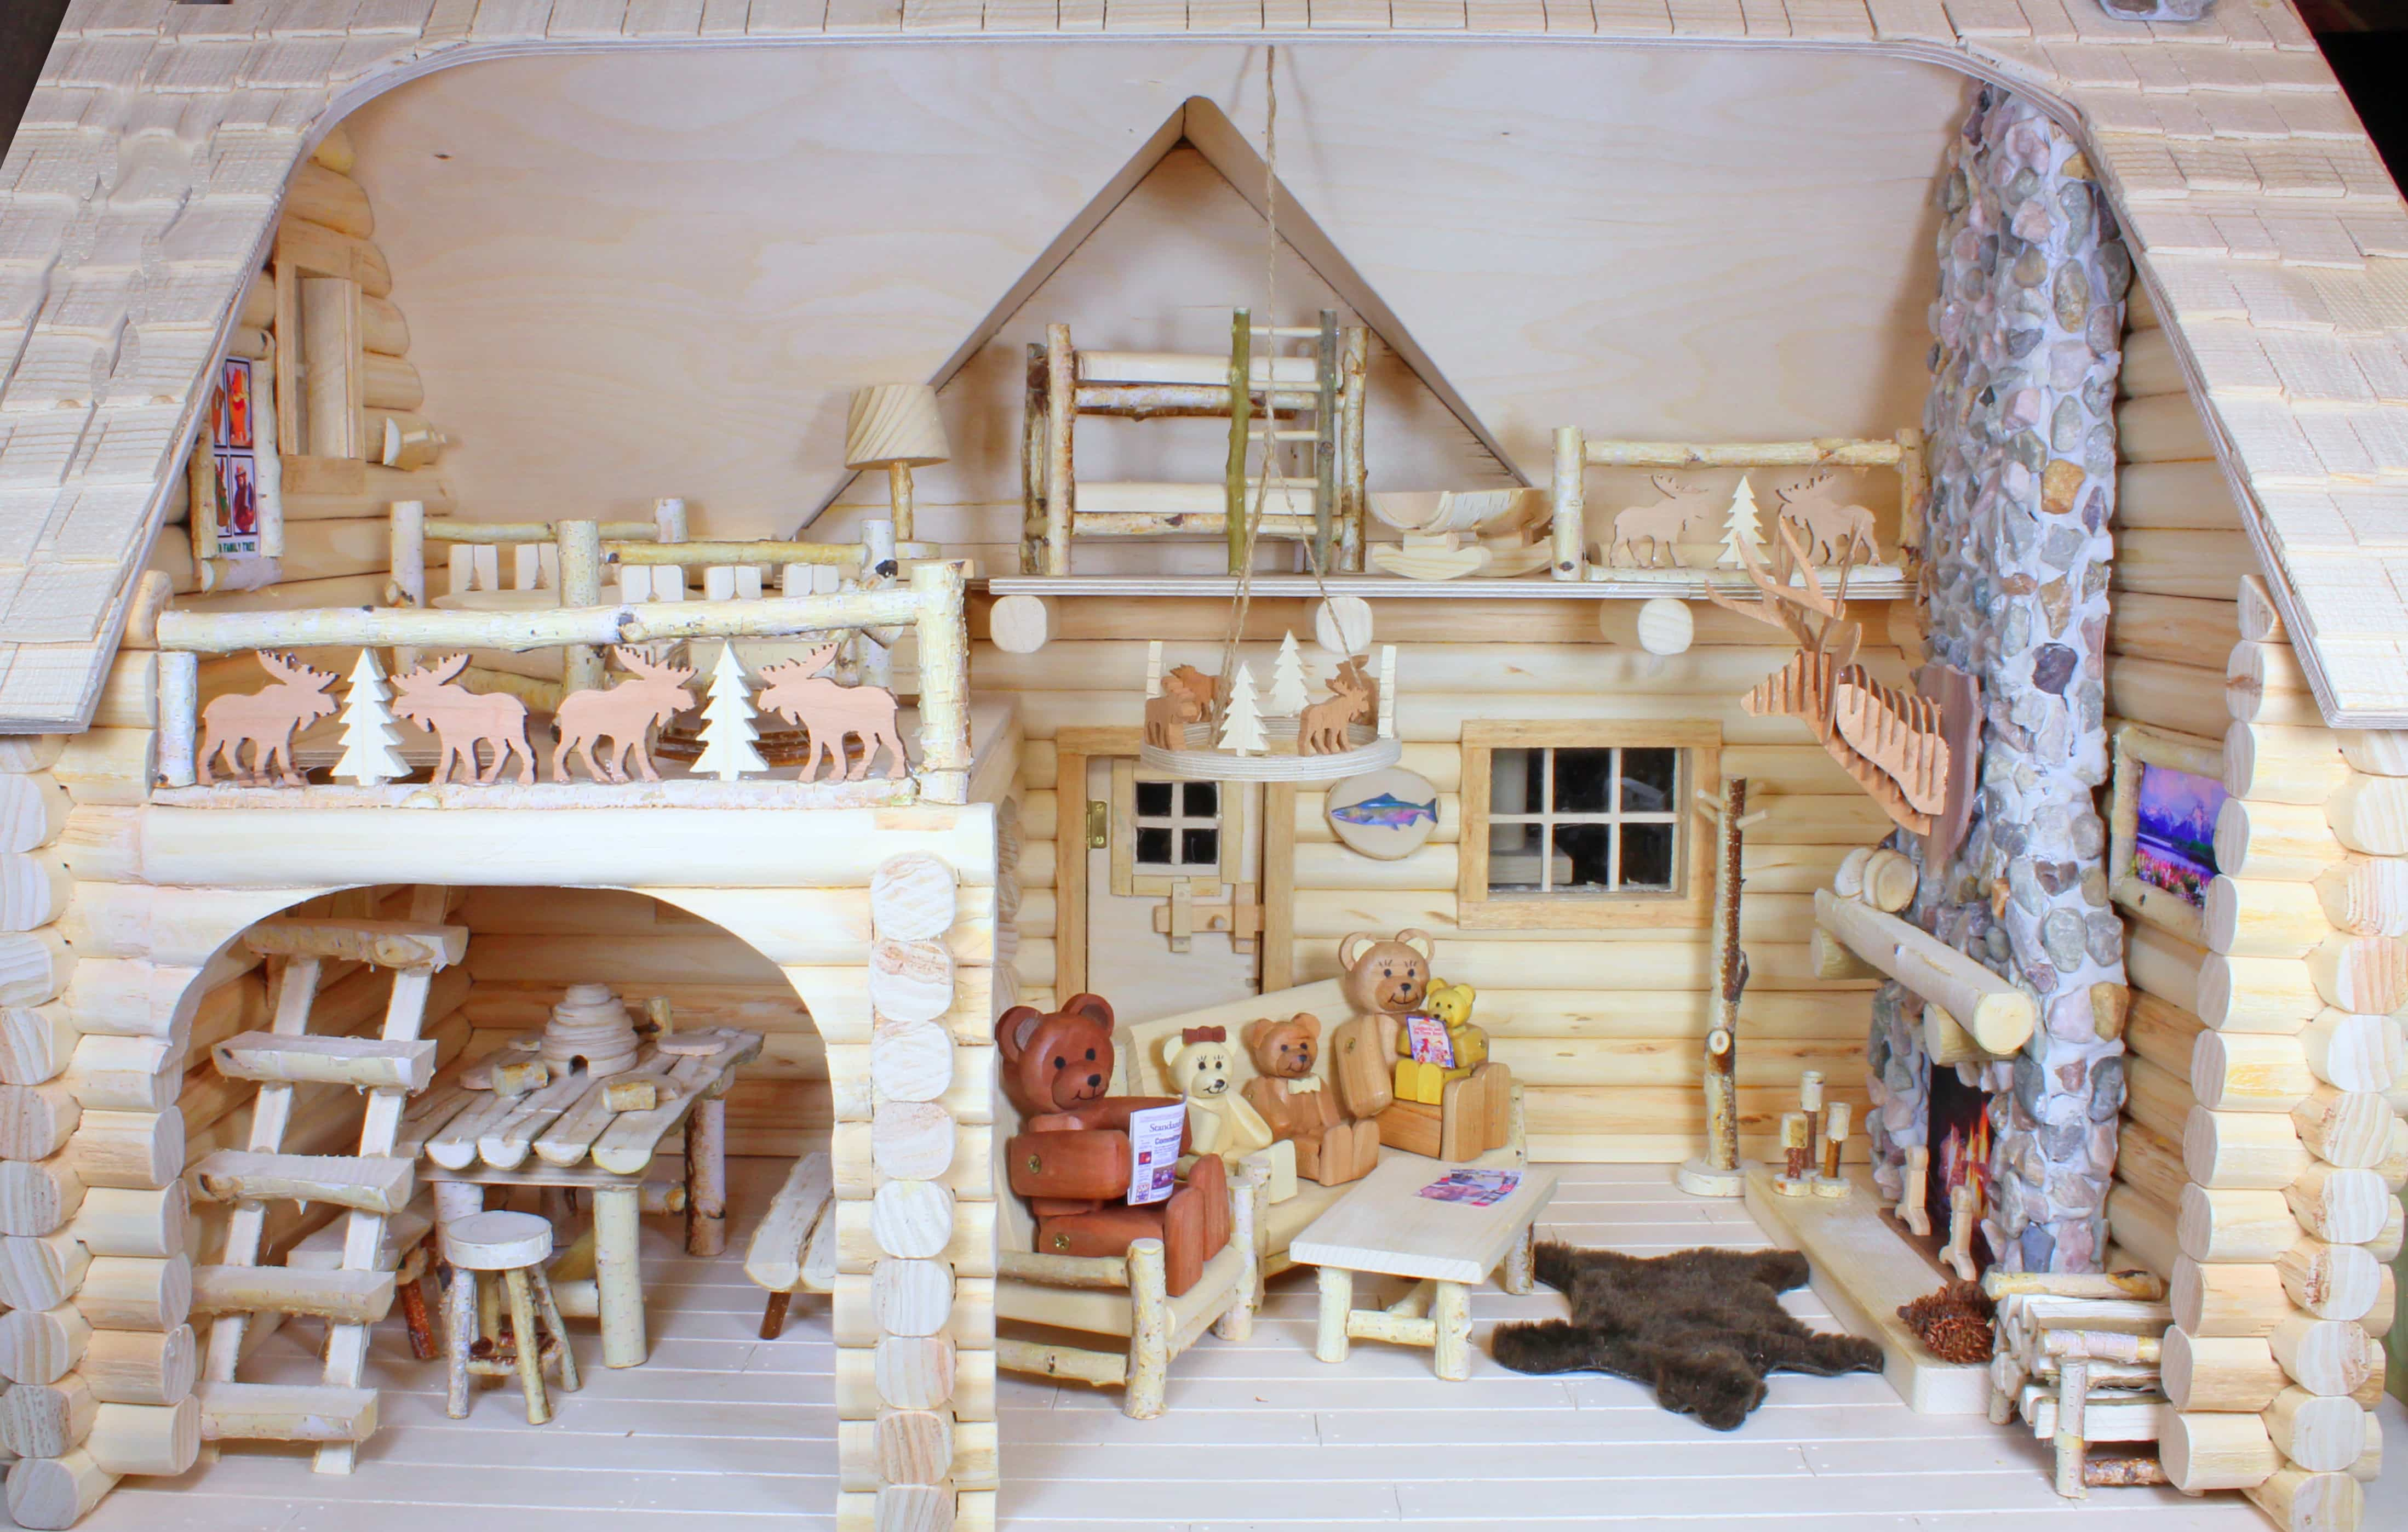 Bear Family Lodge Woodworking Plan - Forest Street Designs